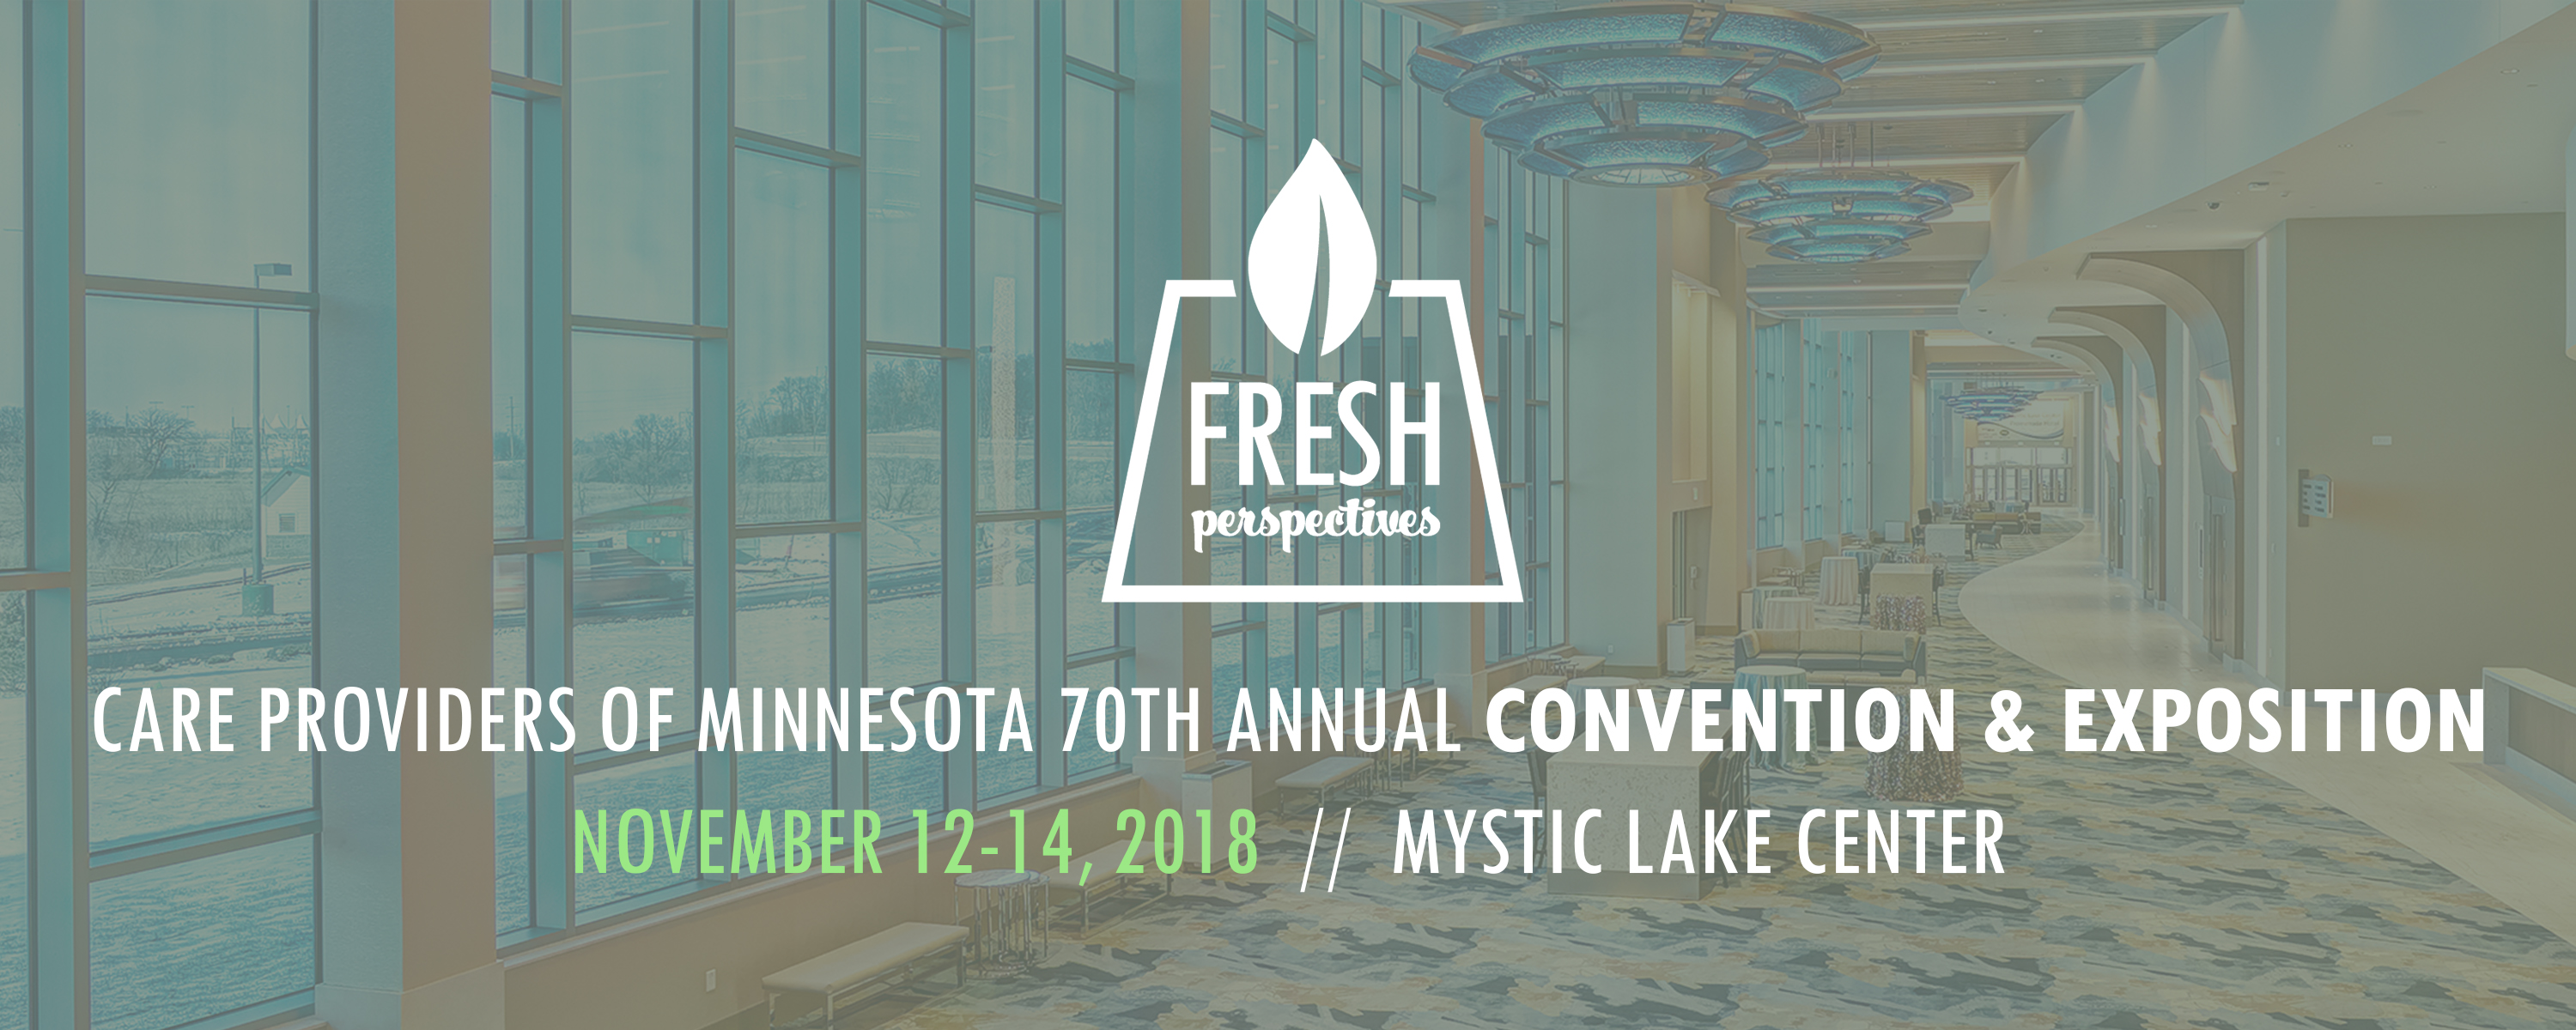 Fresh Perspectives: Care Providers of Minnesota 70th Annual Convention & Exposition, November 12-14, 2018, at the Mystic Lake Center